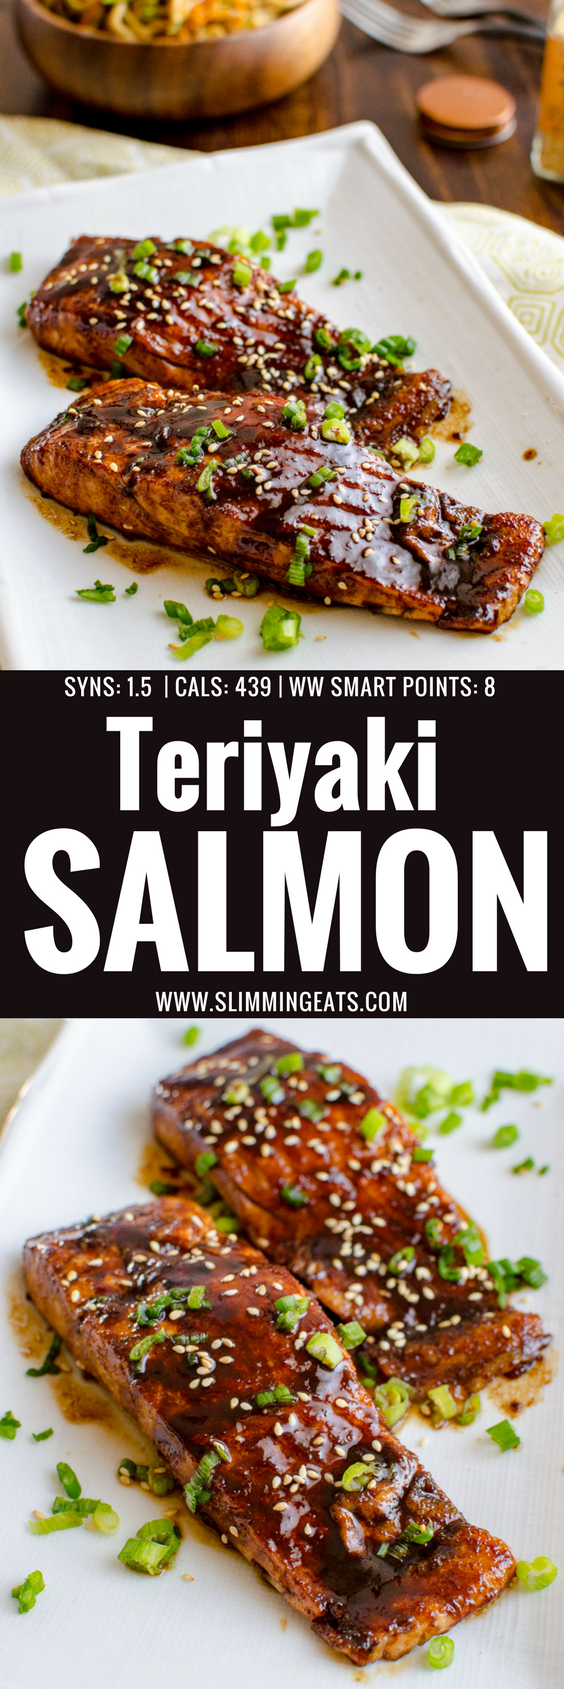 Love Salmon? This Teriyaki Salmon with Noodles is a simple low syn delicious dish that the whole family will enjoy. Dairy Free, Slimming World and Weight Watchers friendly | www.slimmingeats.com #salmonteriyaki